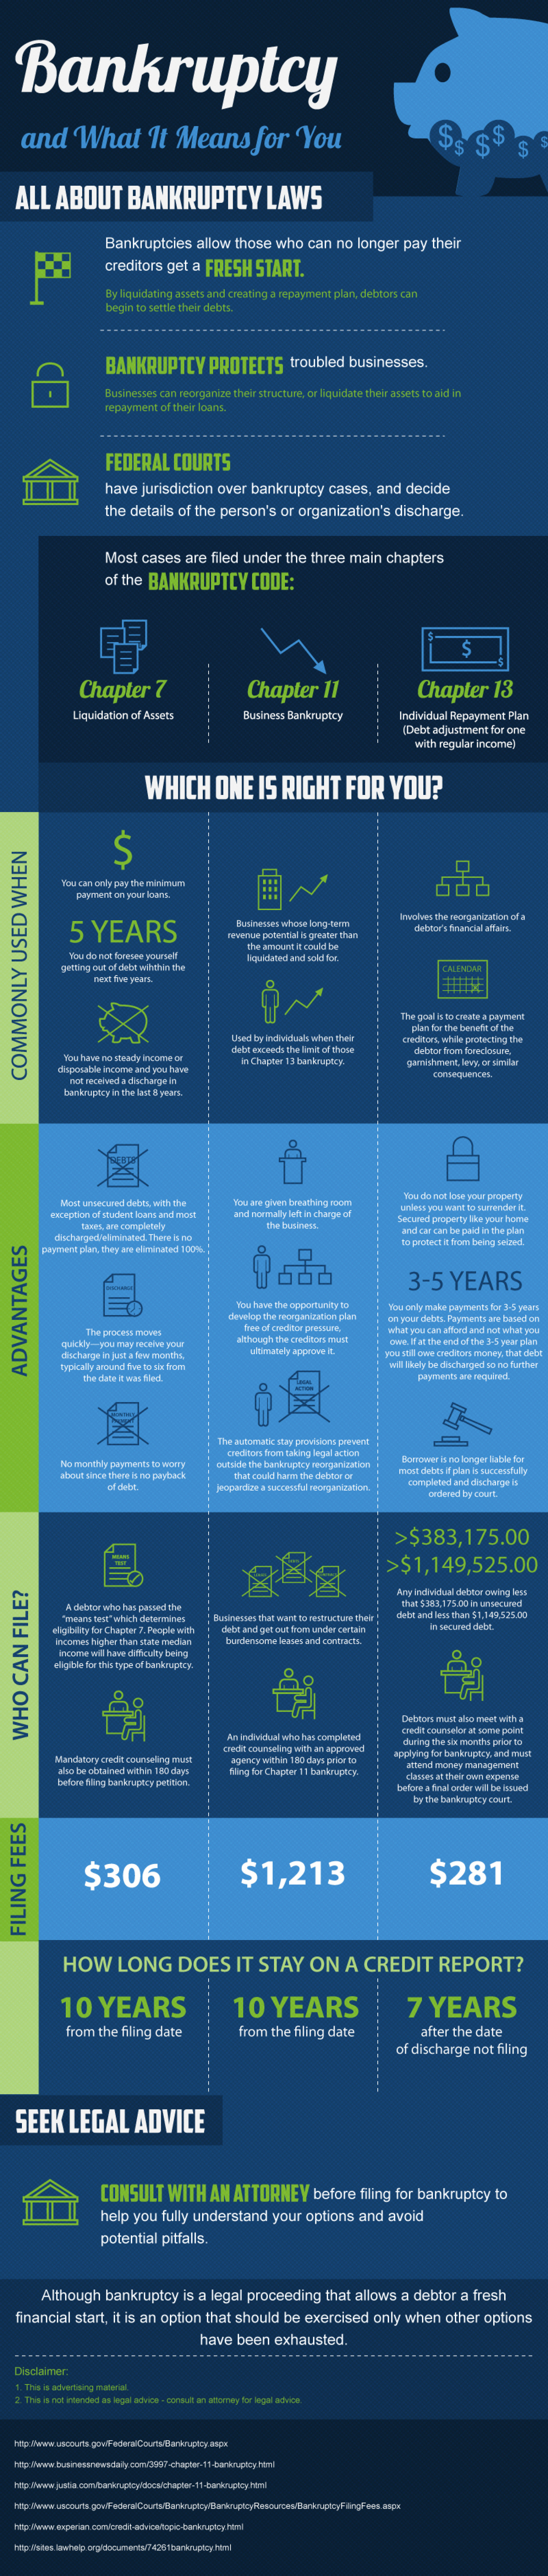 Bankruptcy and What It Means for You Infographic